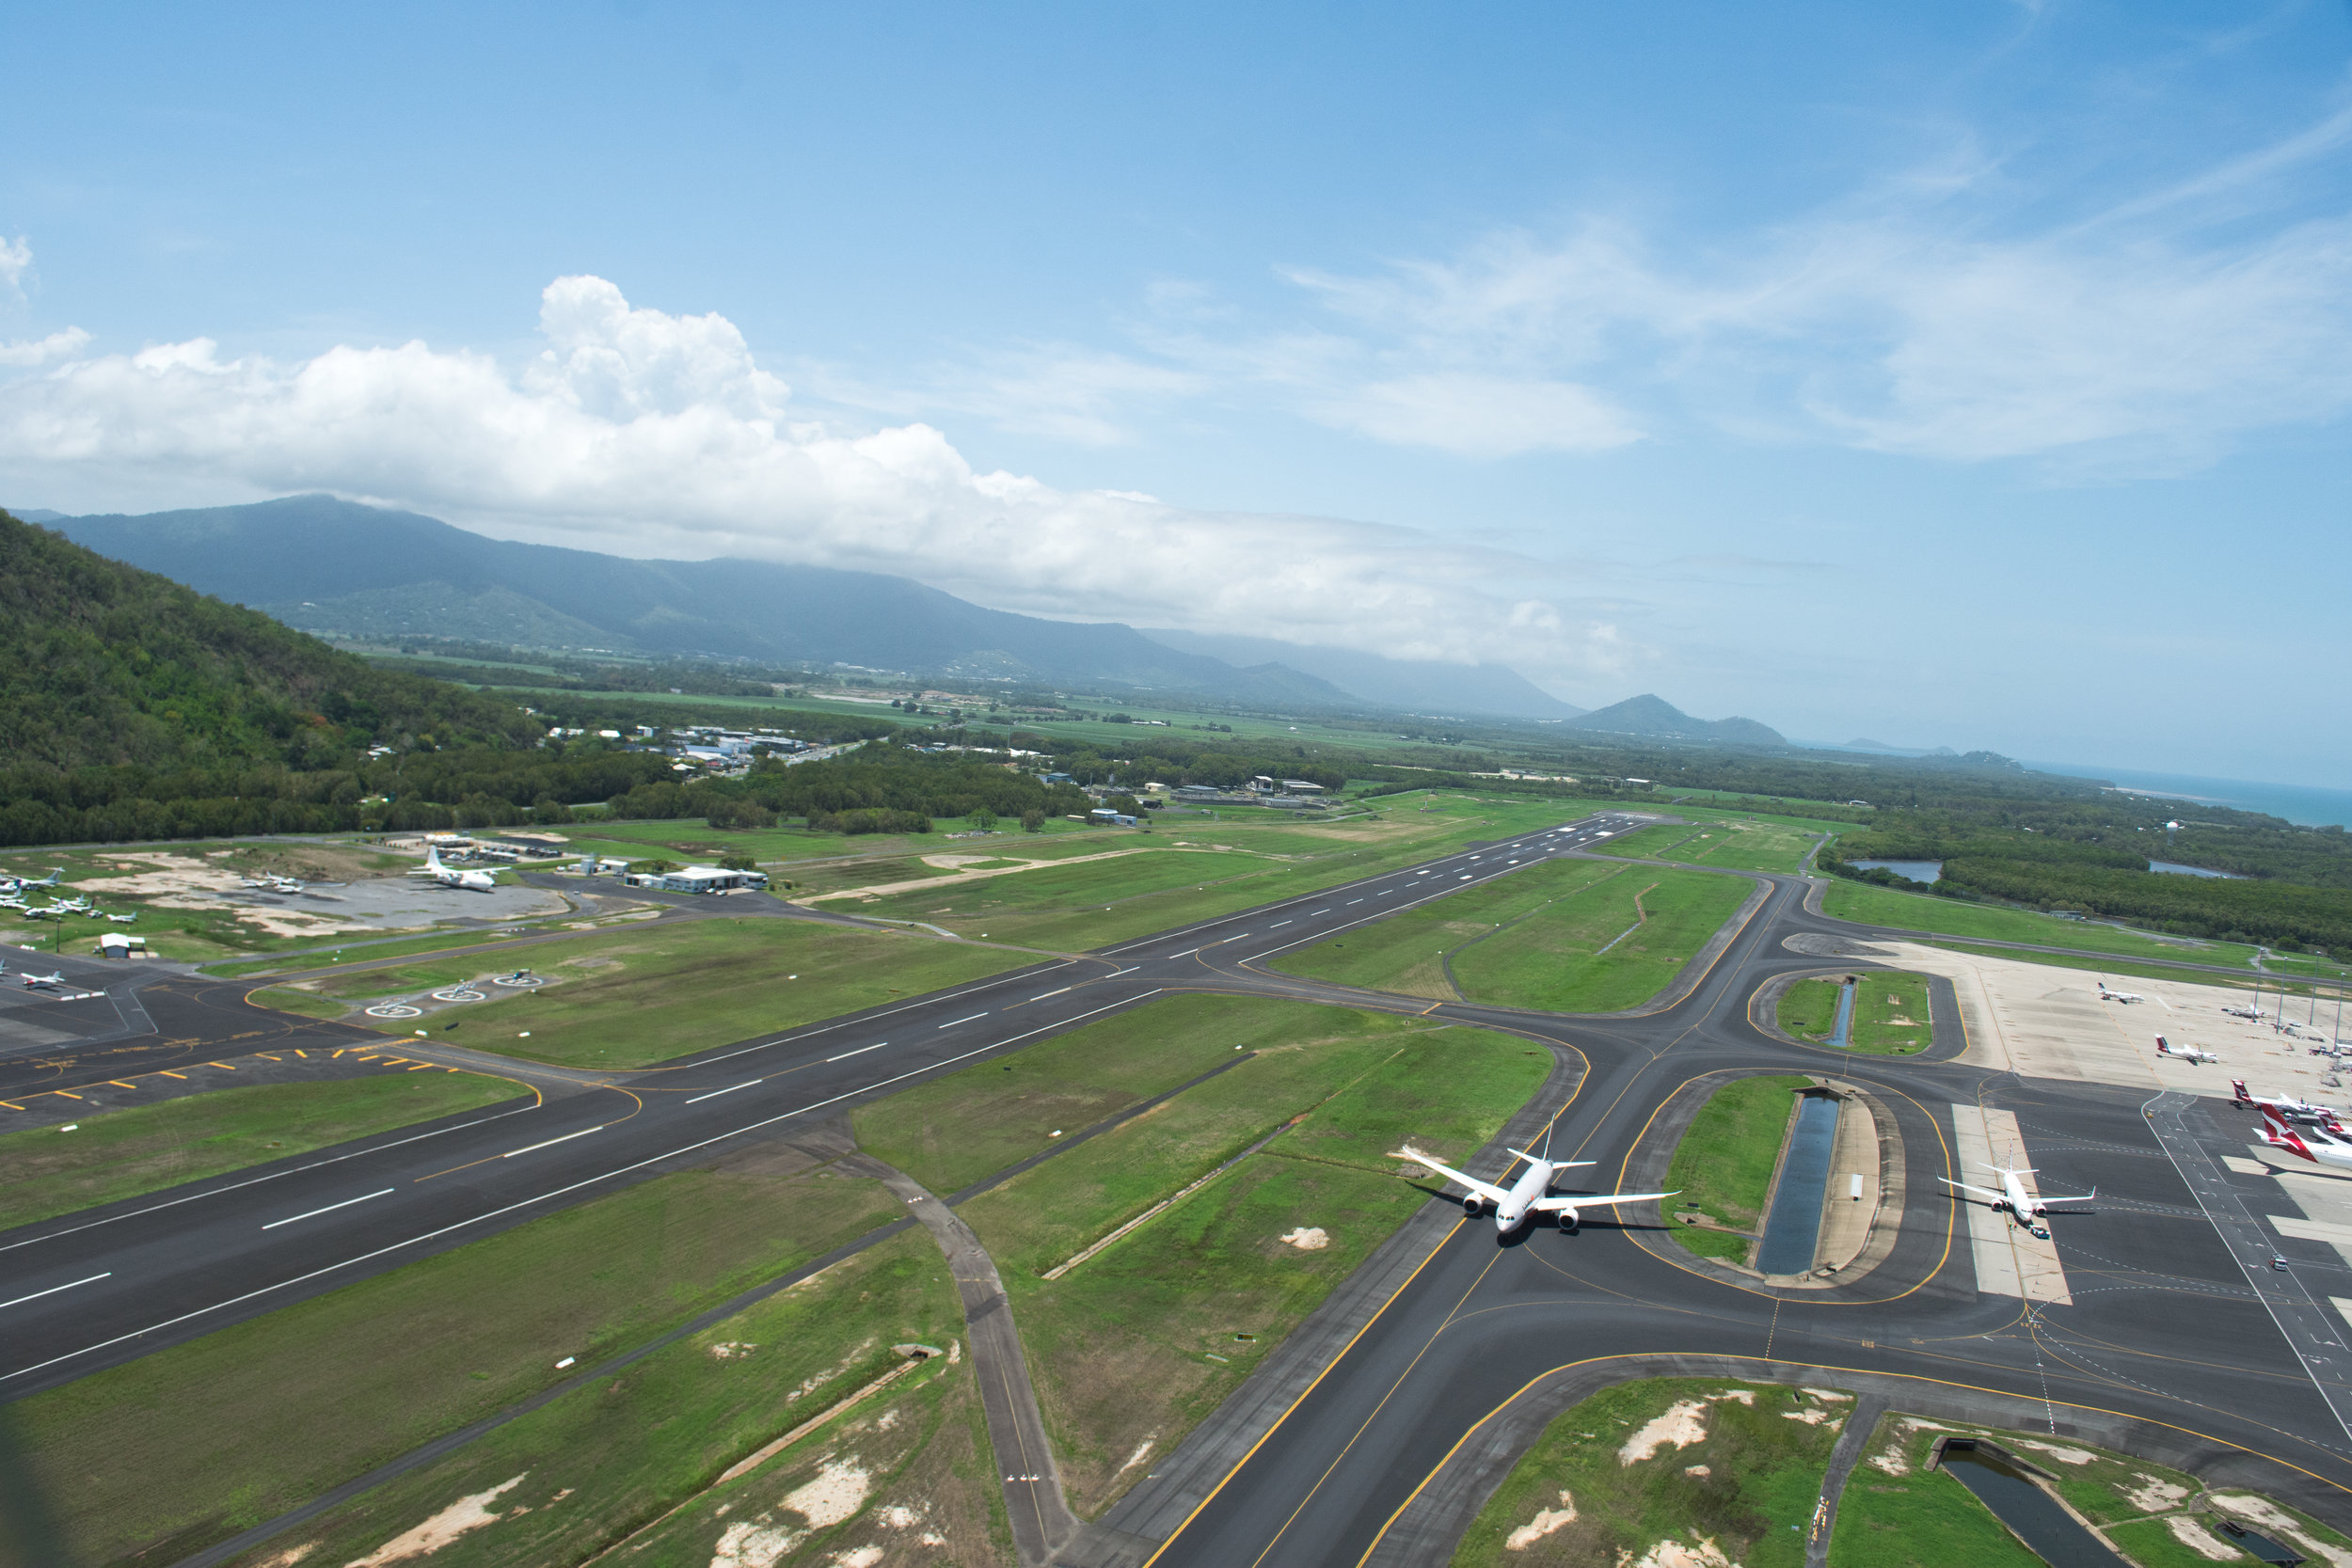 Flying over Cairns Airport